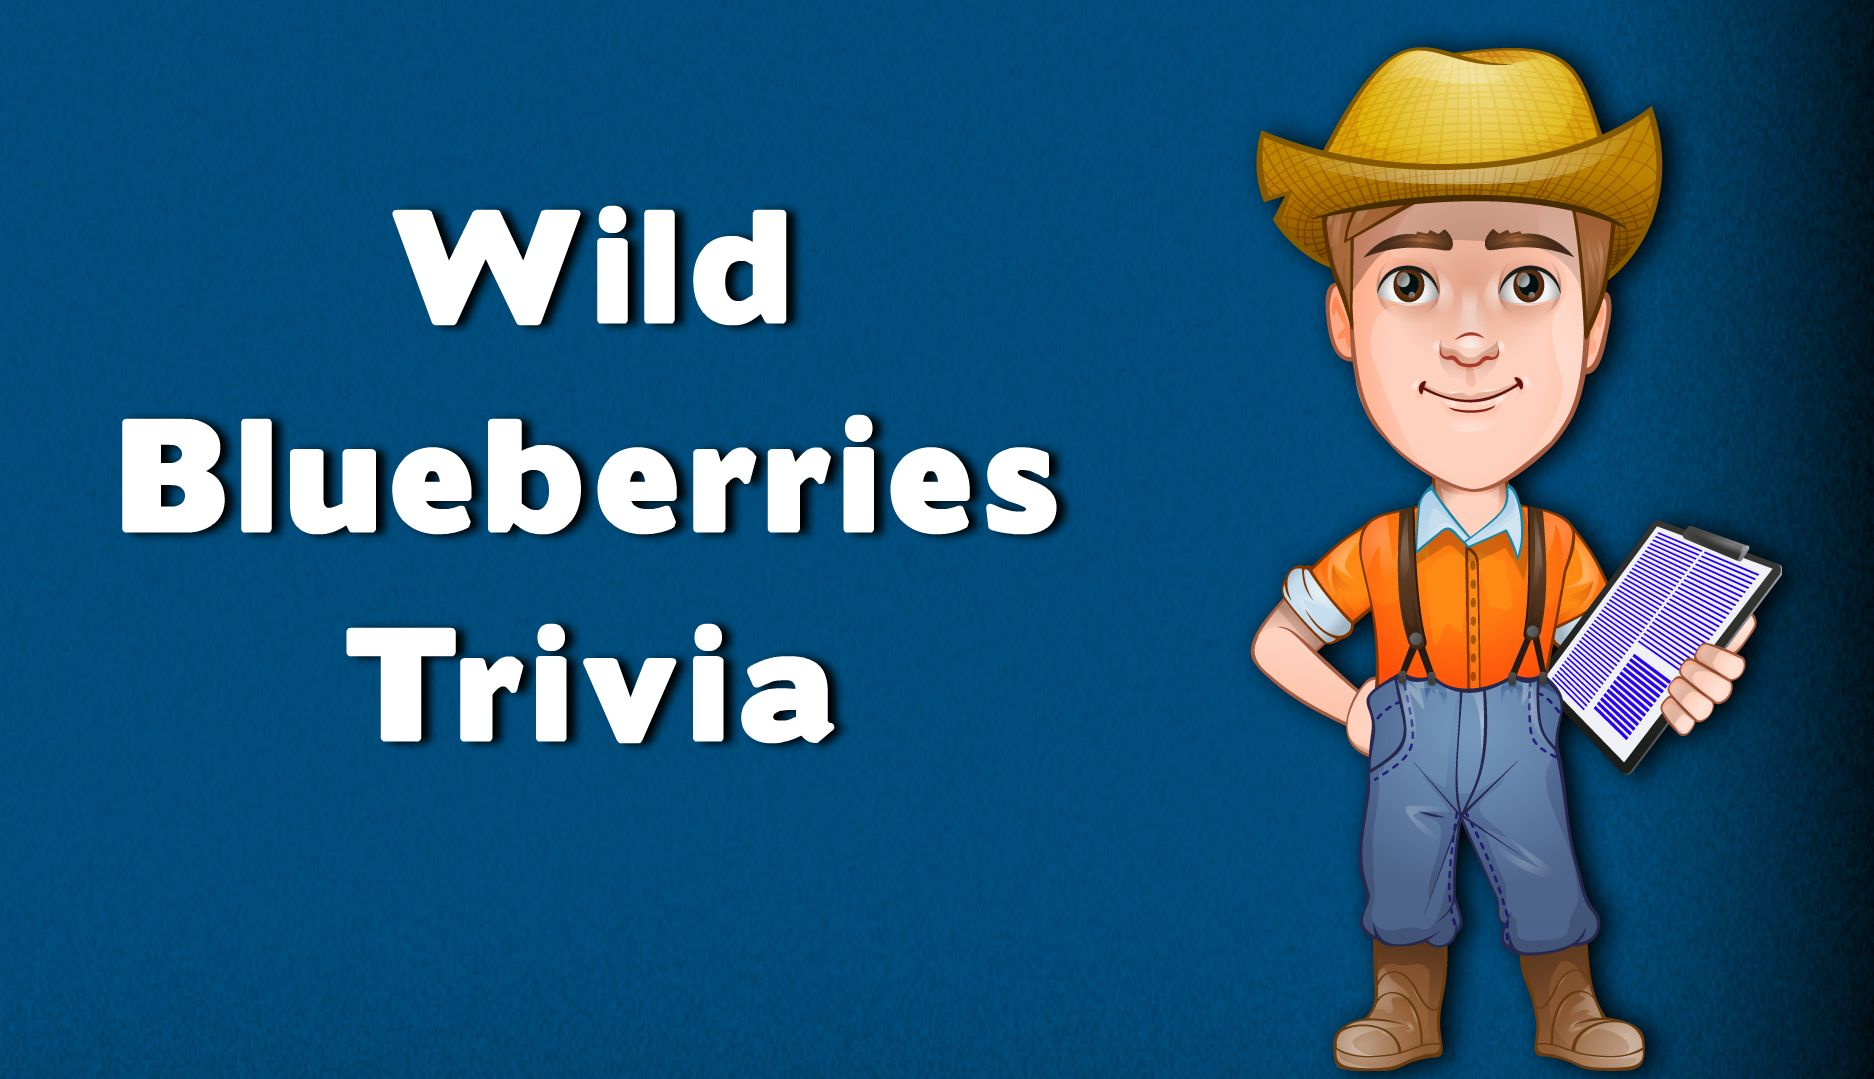 Wild Blueberry Trivia Fun Facts